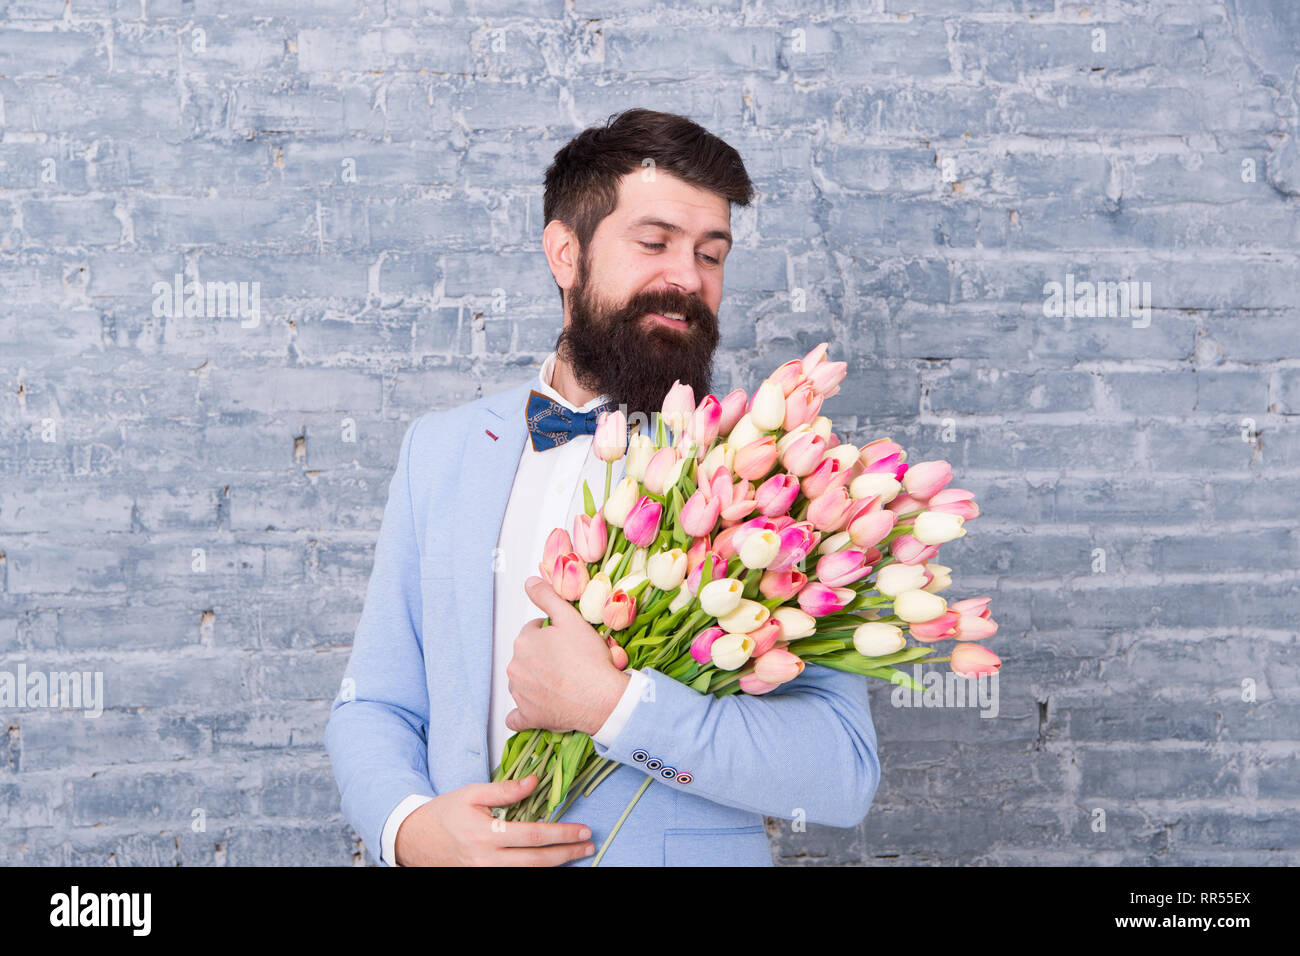 Romantic man with flowers. Romantic gift. Macho getting ready romantic date. Tulips for her. Man well groomed tuxedo bow tie hold flowers bouquet. From sincere heart. Things that make man gentleman. - Stock Image